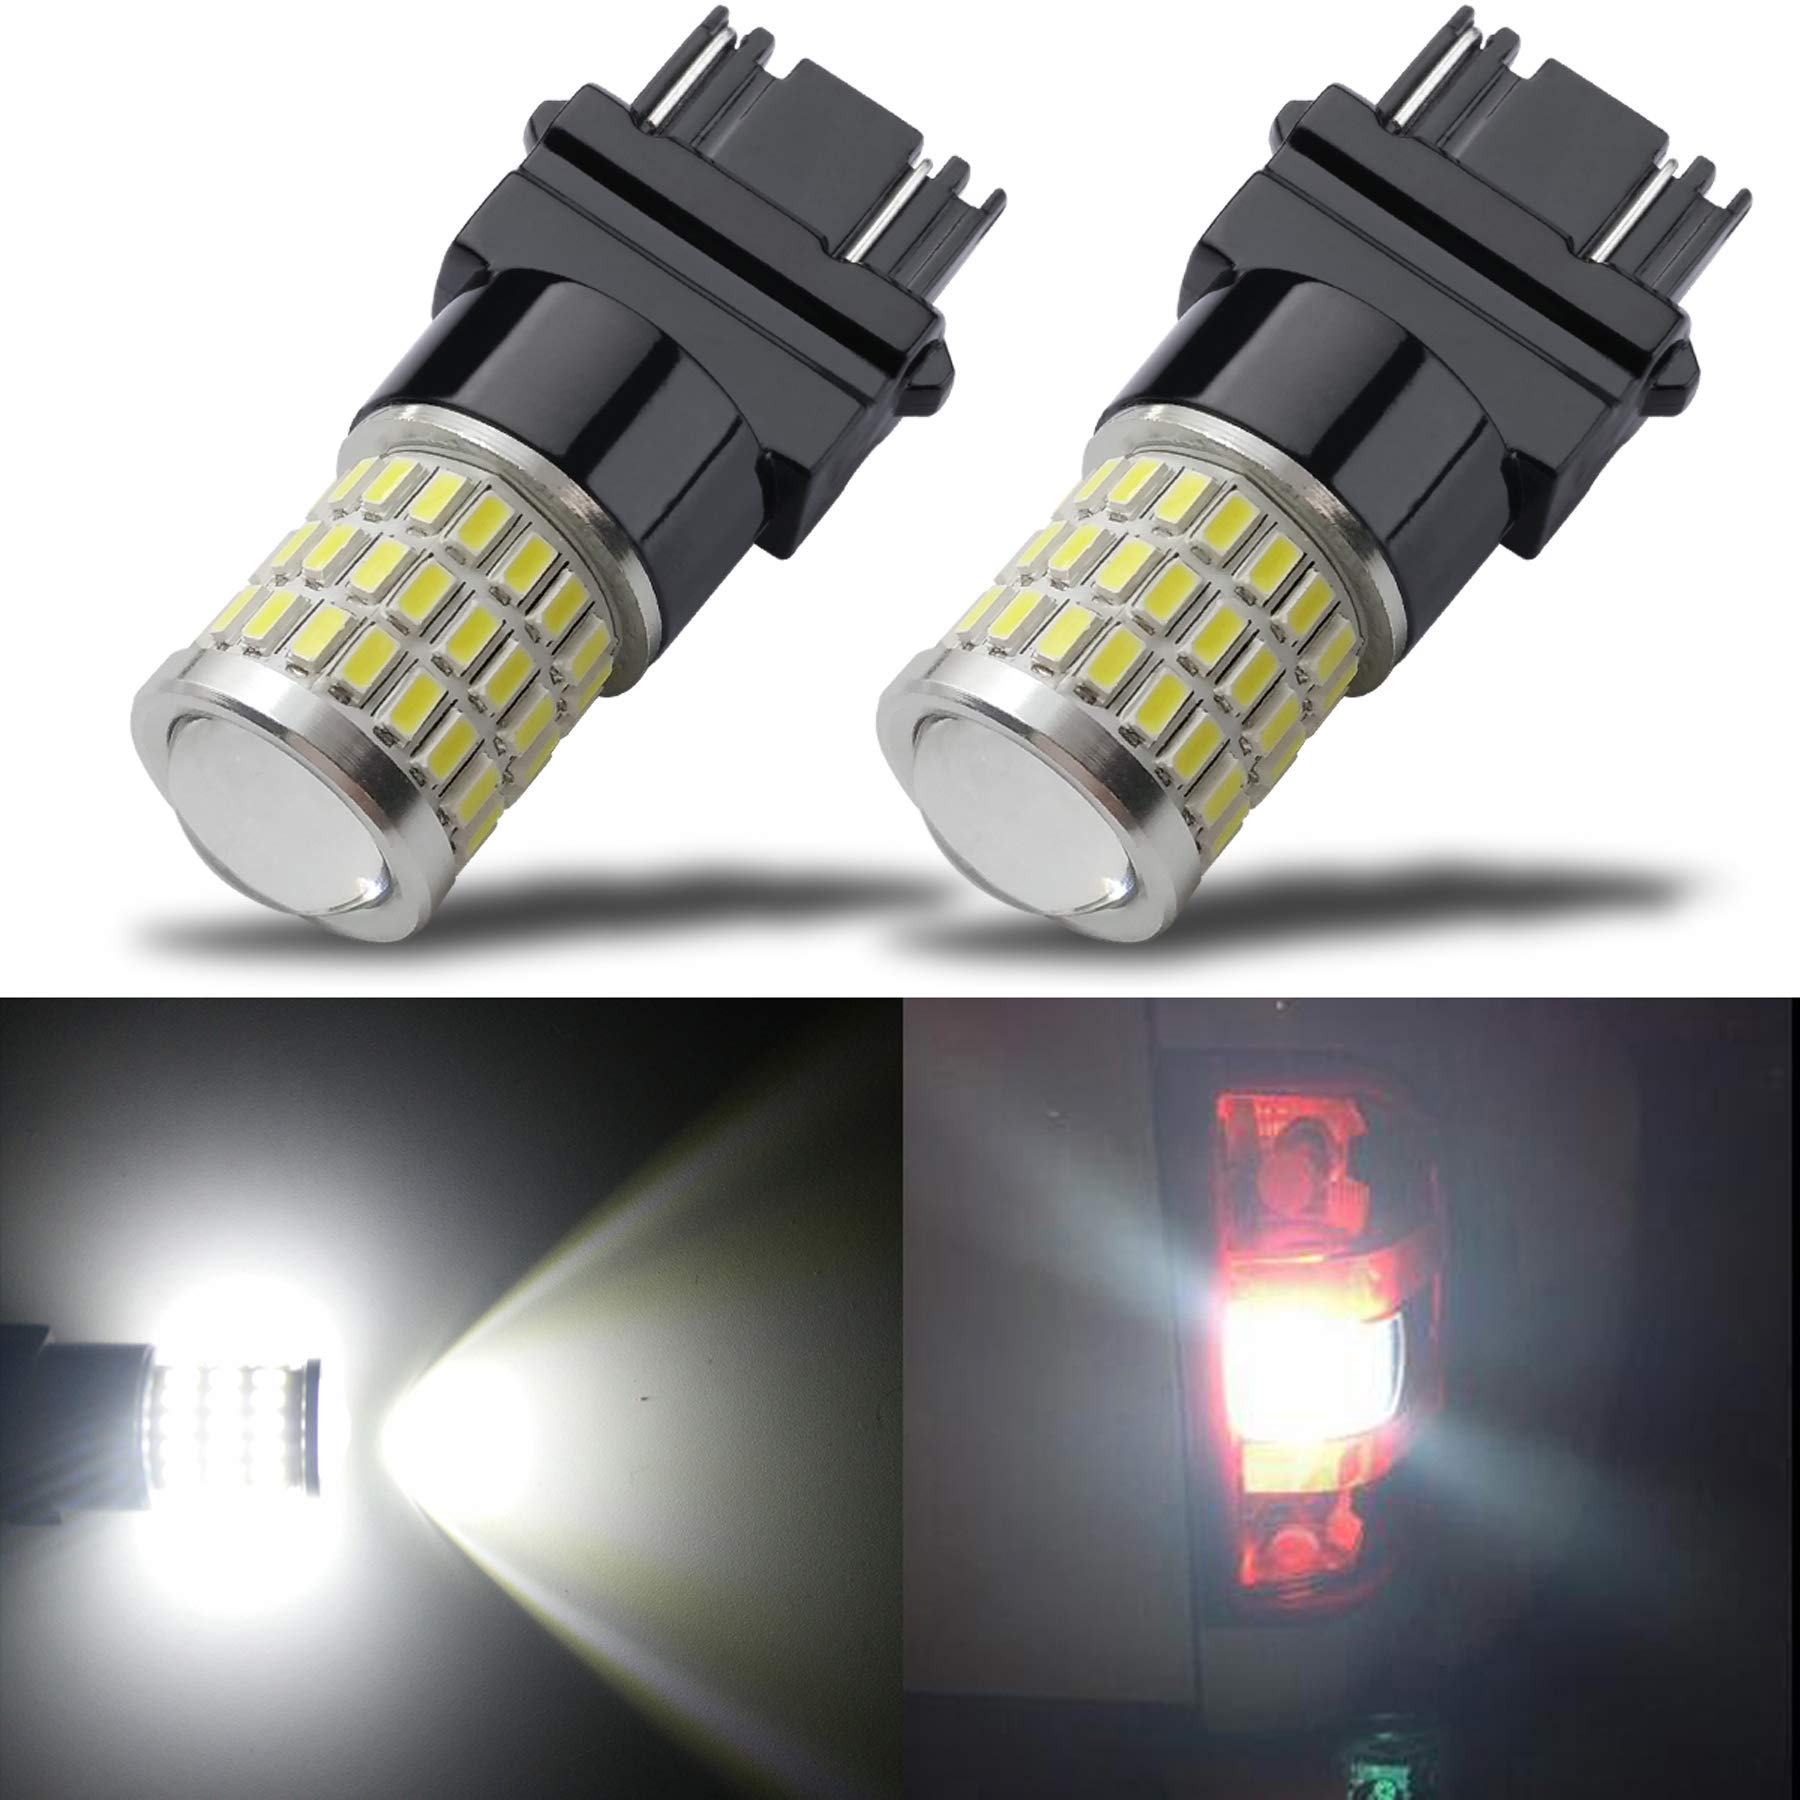 iBrightstar Newest 9-30V Super Bright Low Power 3156 3157 3057 4157 LED Bulbs with Projector Replacement for Back Up Reverse Lights and Tail Brake Parking Lights, Xenon White